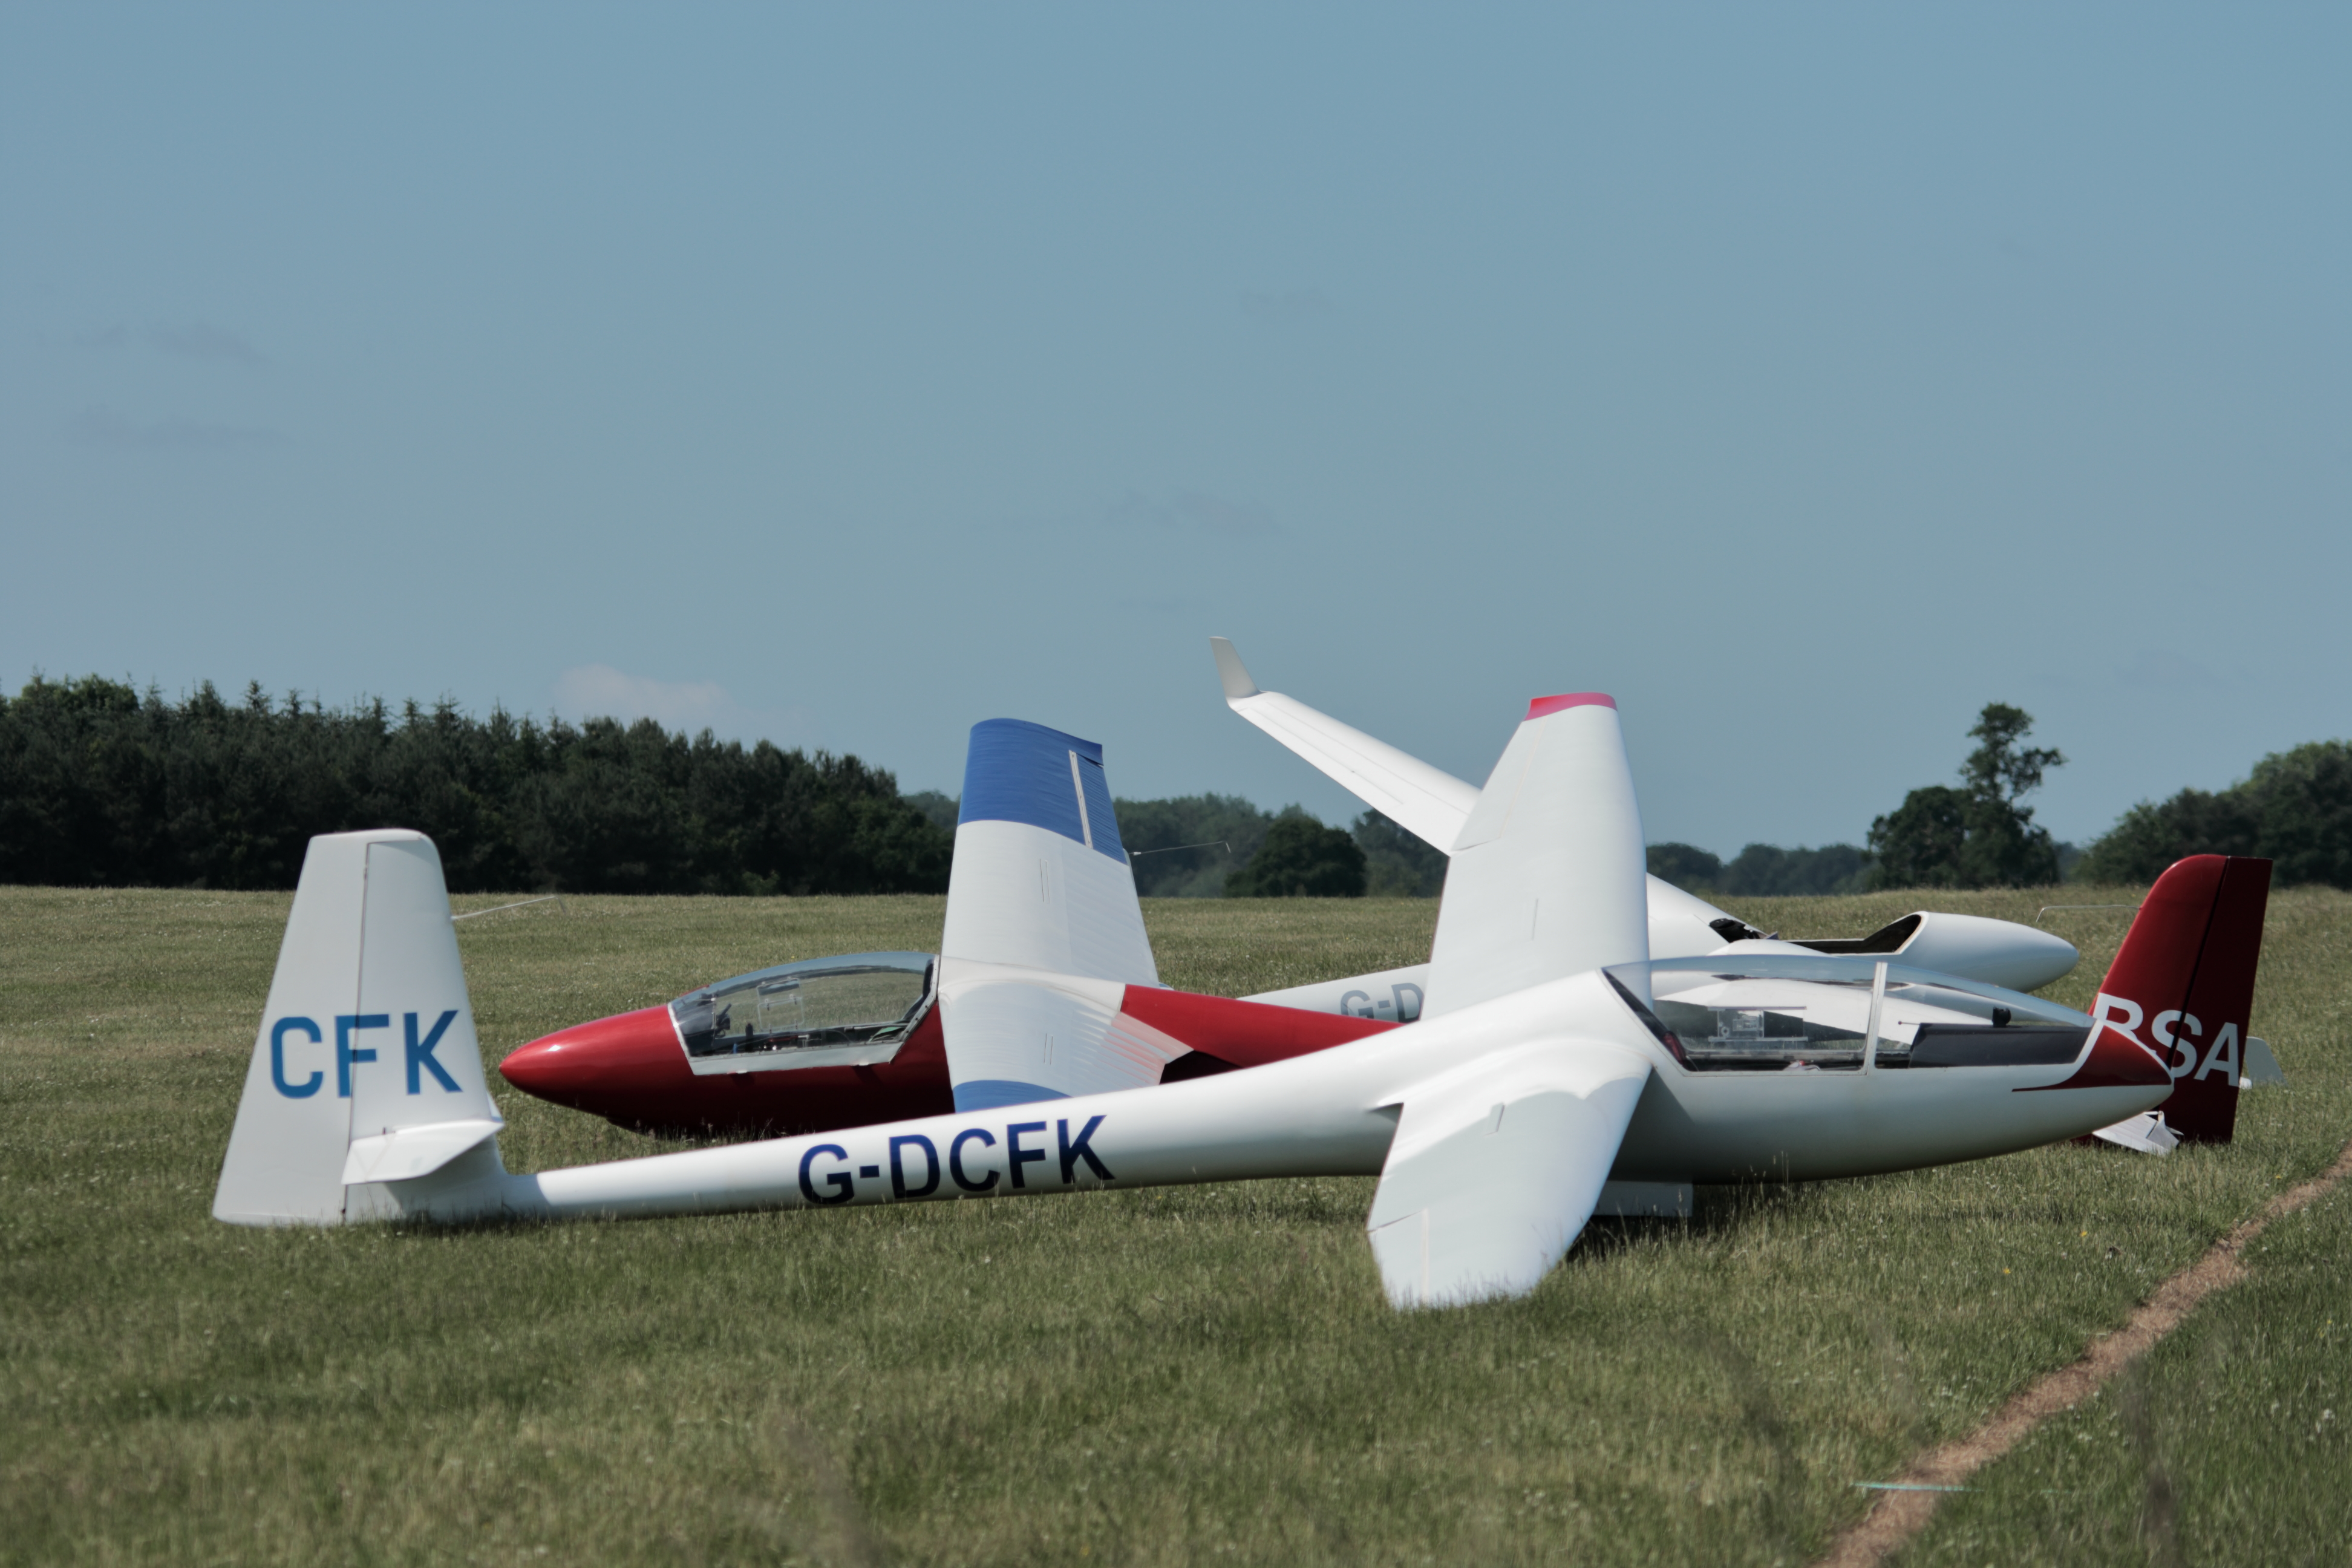 image od gliders at rest on a grass airfield